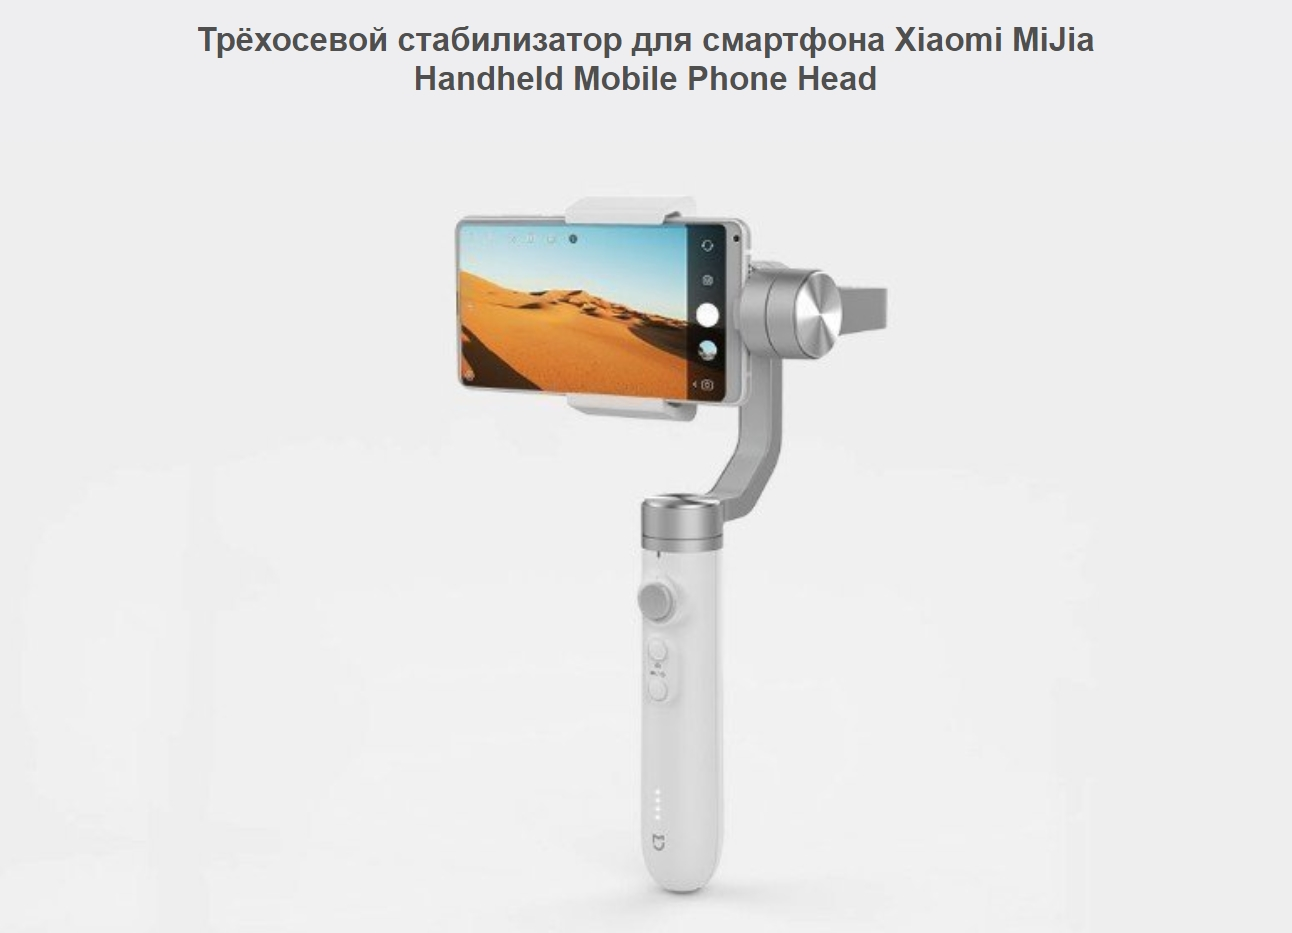 Трёхосевой стабилизатор (стедикам) для смартфона Xiaomi MiJia Handheld Mobile Phone Head